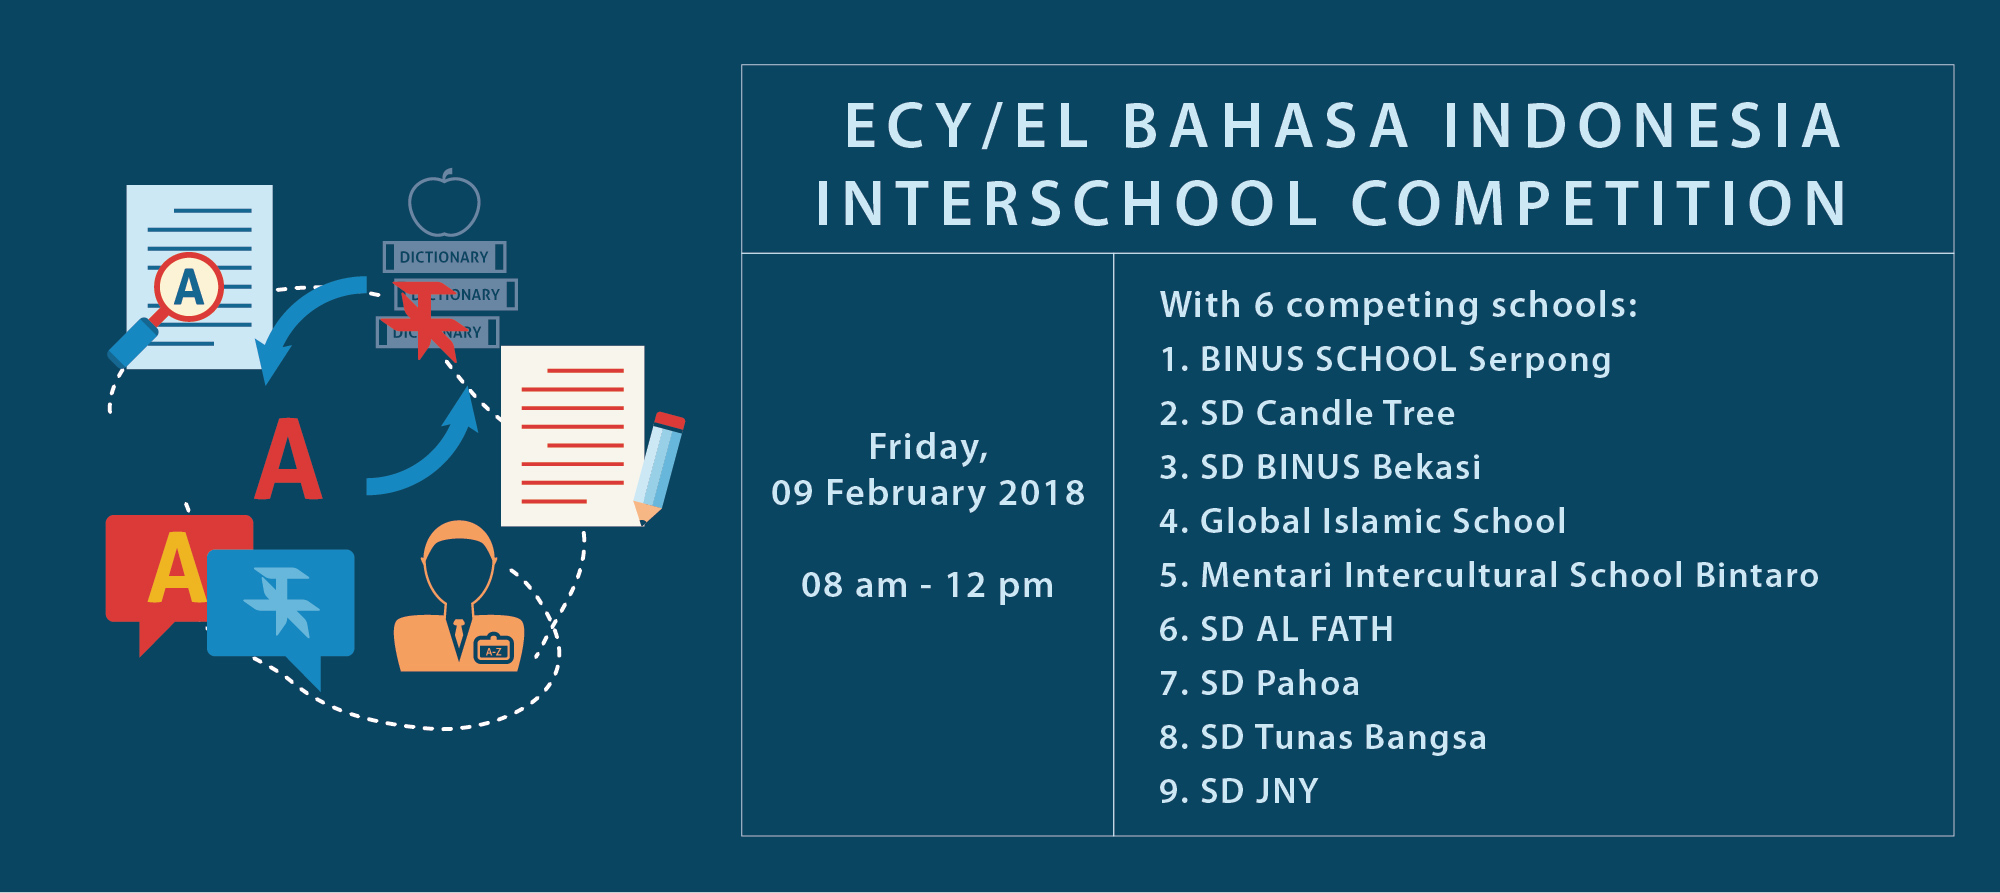 INTERSCHOOL COMPETITION (Bahasa Indonesia)